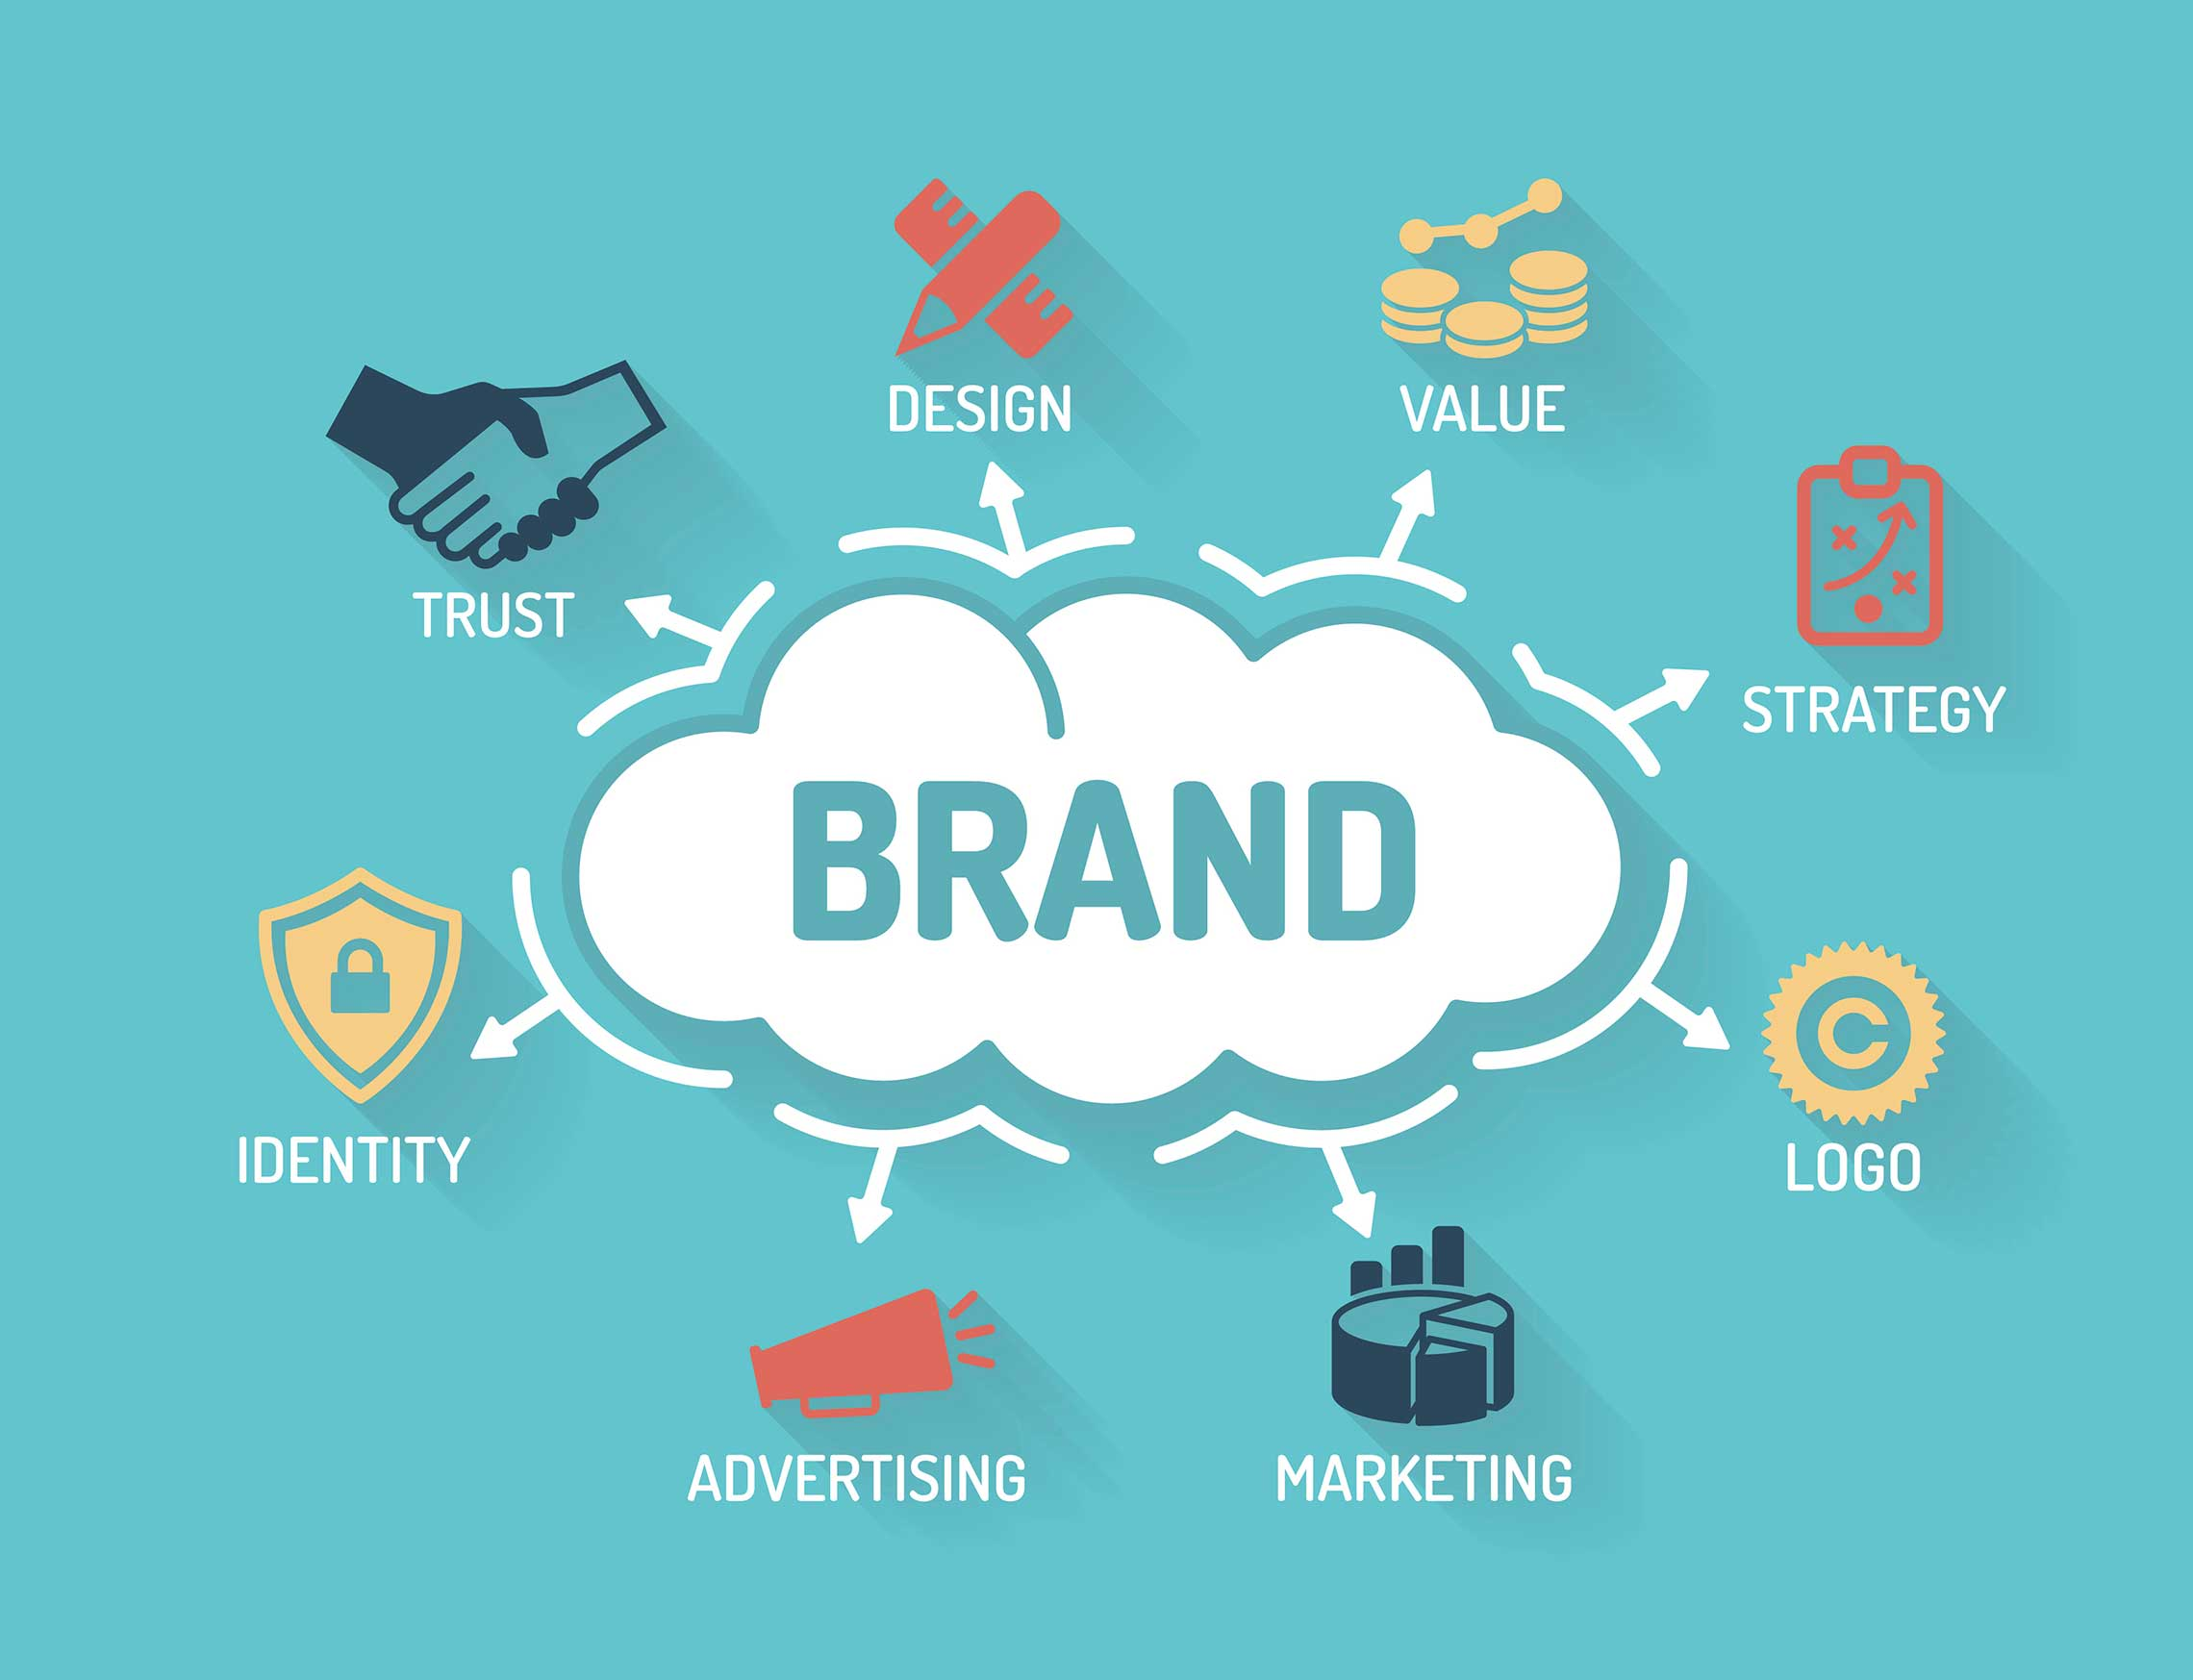 Four Easy Methods to Brand Your Company to outlive your competition